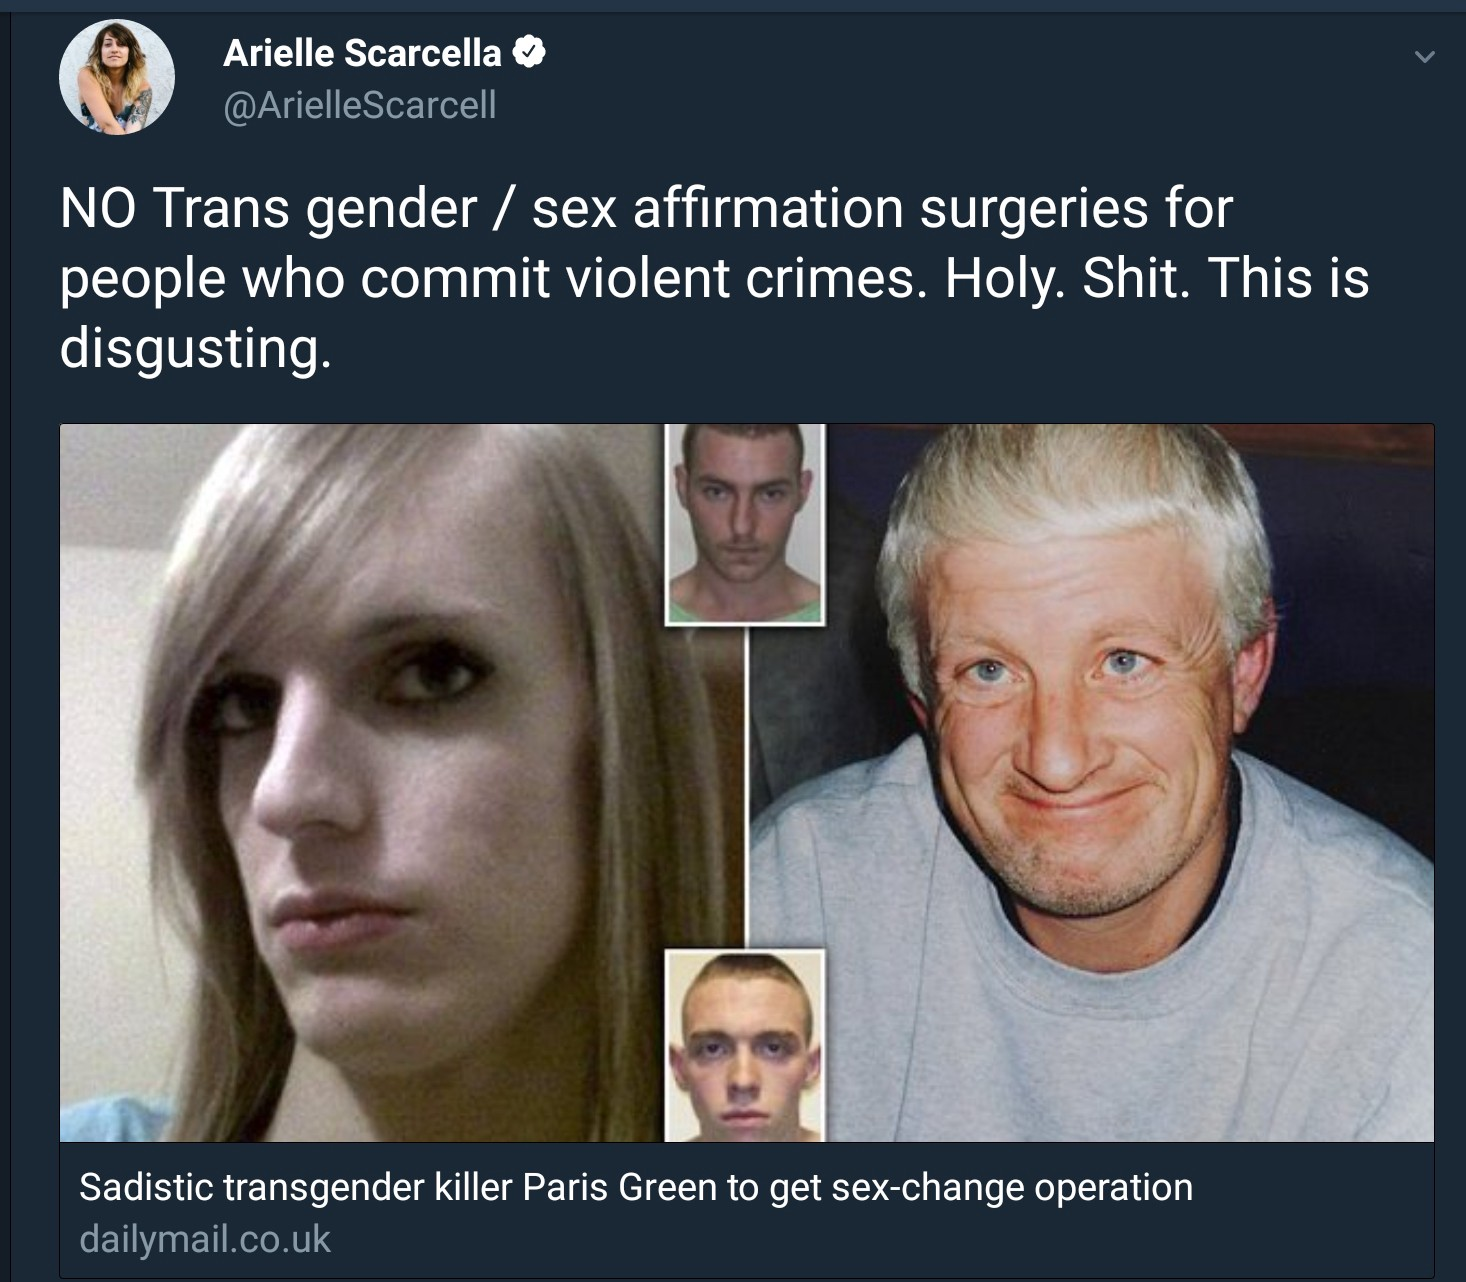 P Ng Her Nose Into The Trans Conversation And Acting Like She Was Elected Our Leader The Latest In Her Series Of Im Totally Not Transphobic But